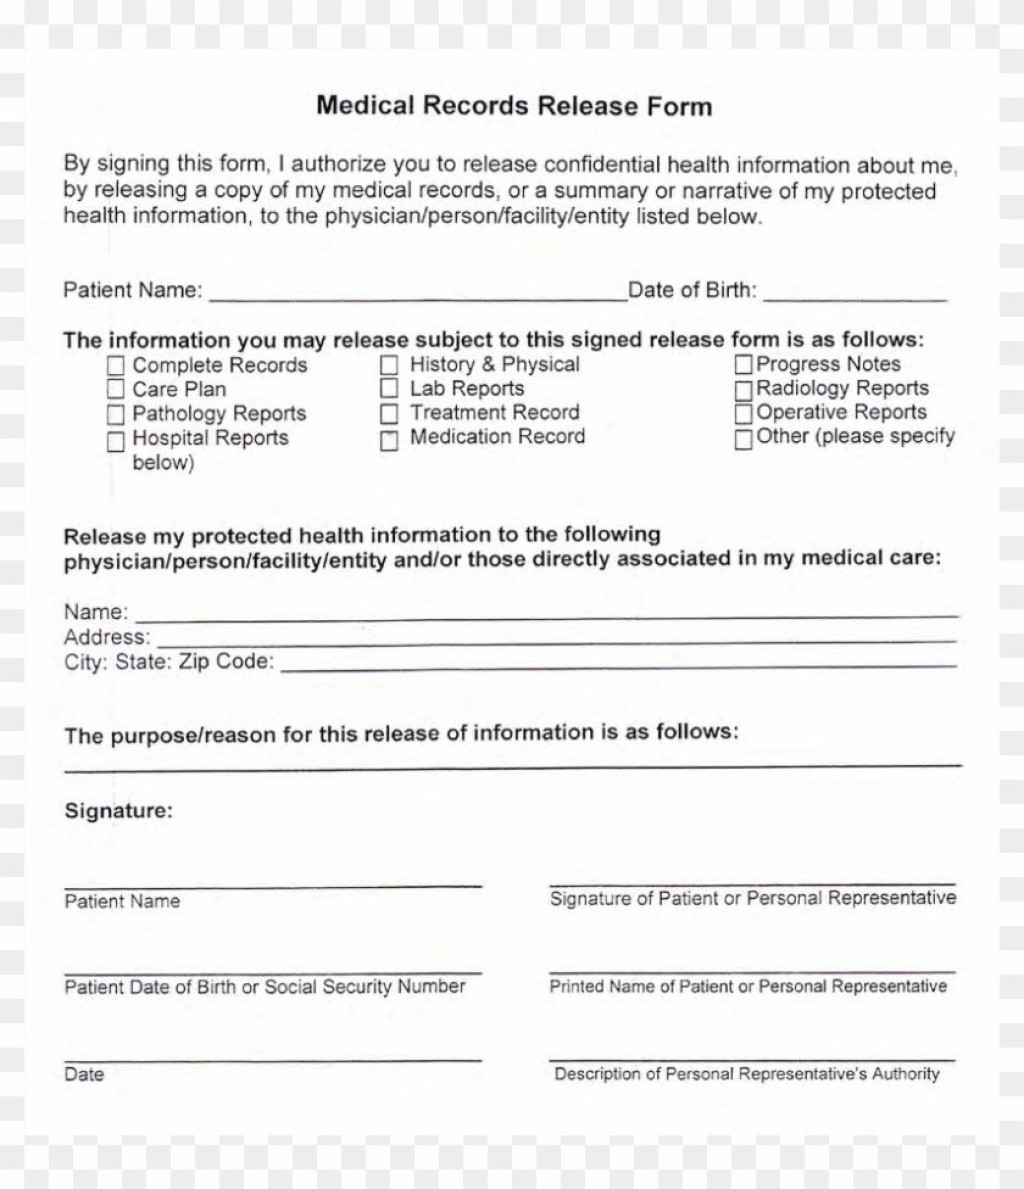 002 Breathtaking Medical Record Release Form Template Concept  Request Free PersonalLarge